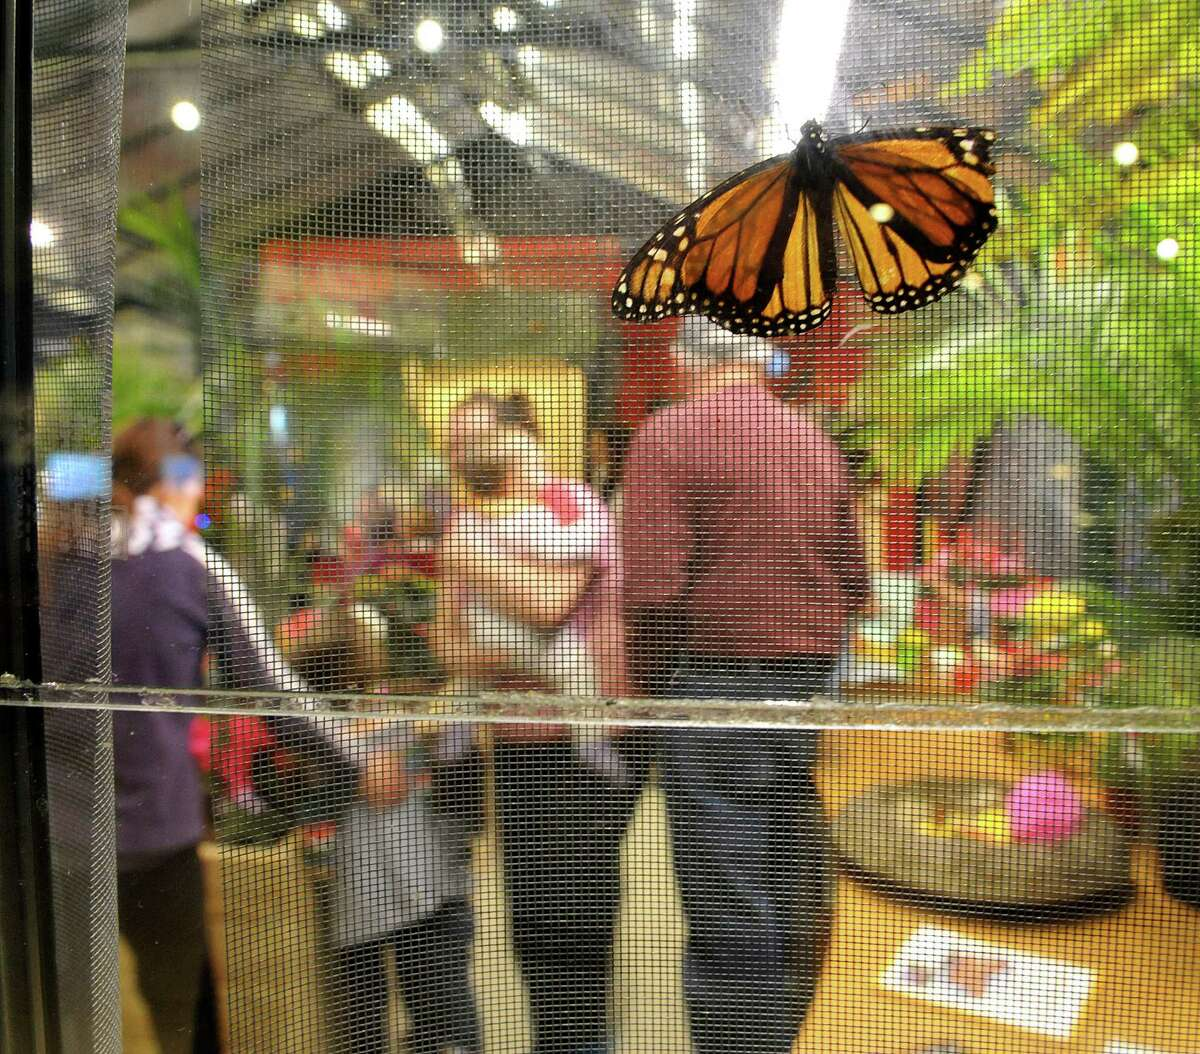 A monarch butterfly rests on some netting at the butterfly house inside the MiSci, the Museum of Innovation and Science on Monday, Feb. 16, 2015, in Schenectady, N.Y. The butterfly house is open through April 19th. (Paul Buckowski / Times Union)